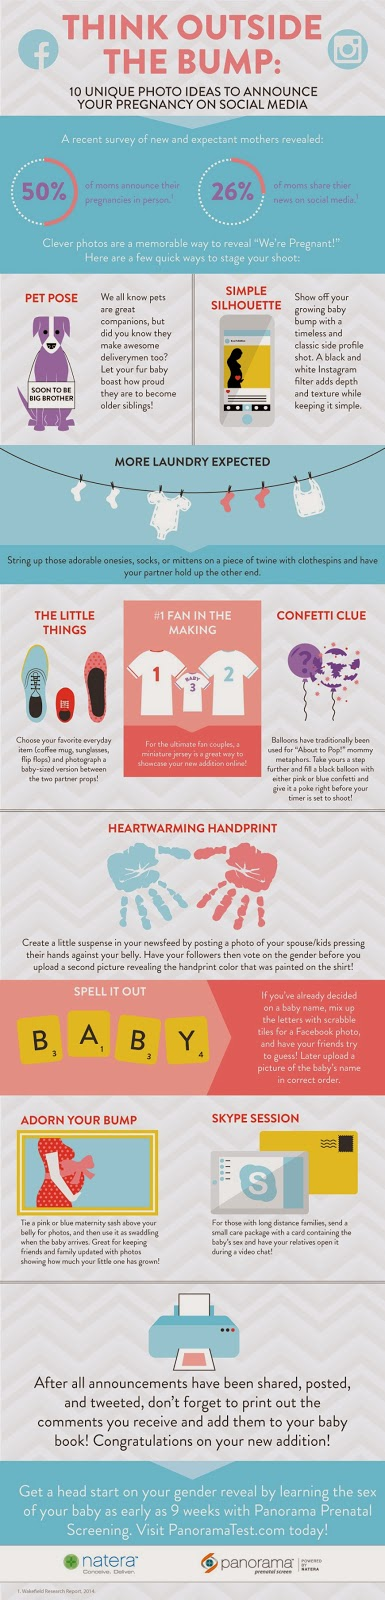 Creative ways to share the gender of your new baby with friends and family